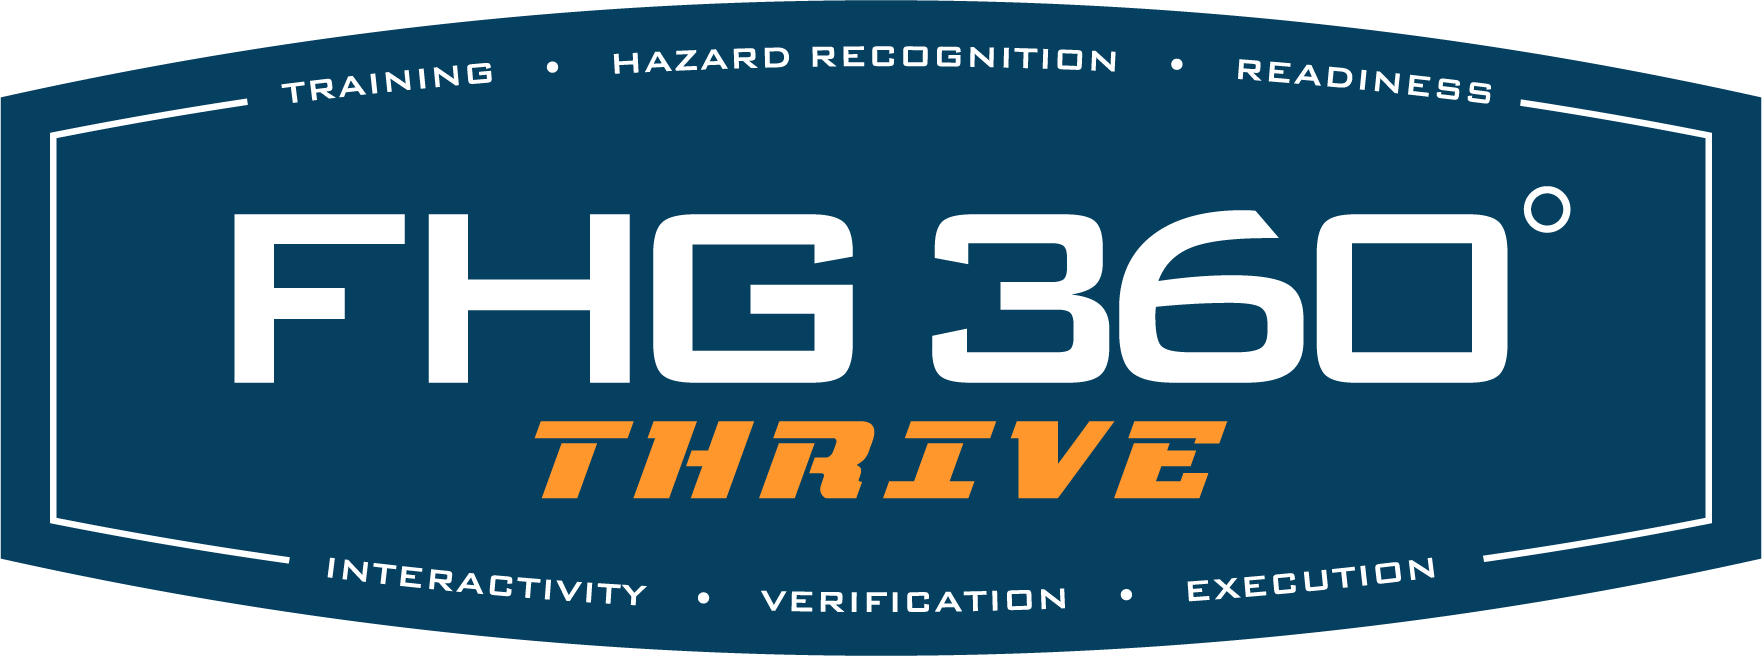 fhg-thrive-safety